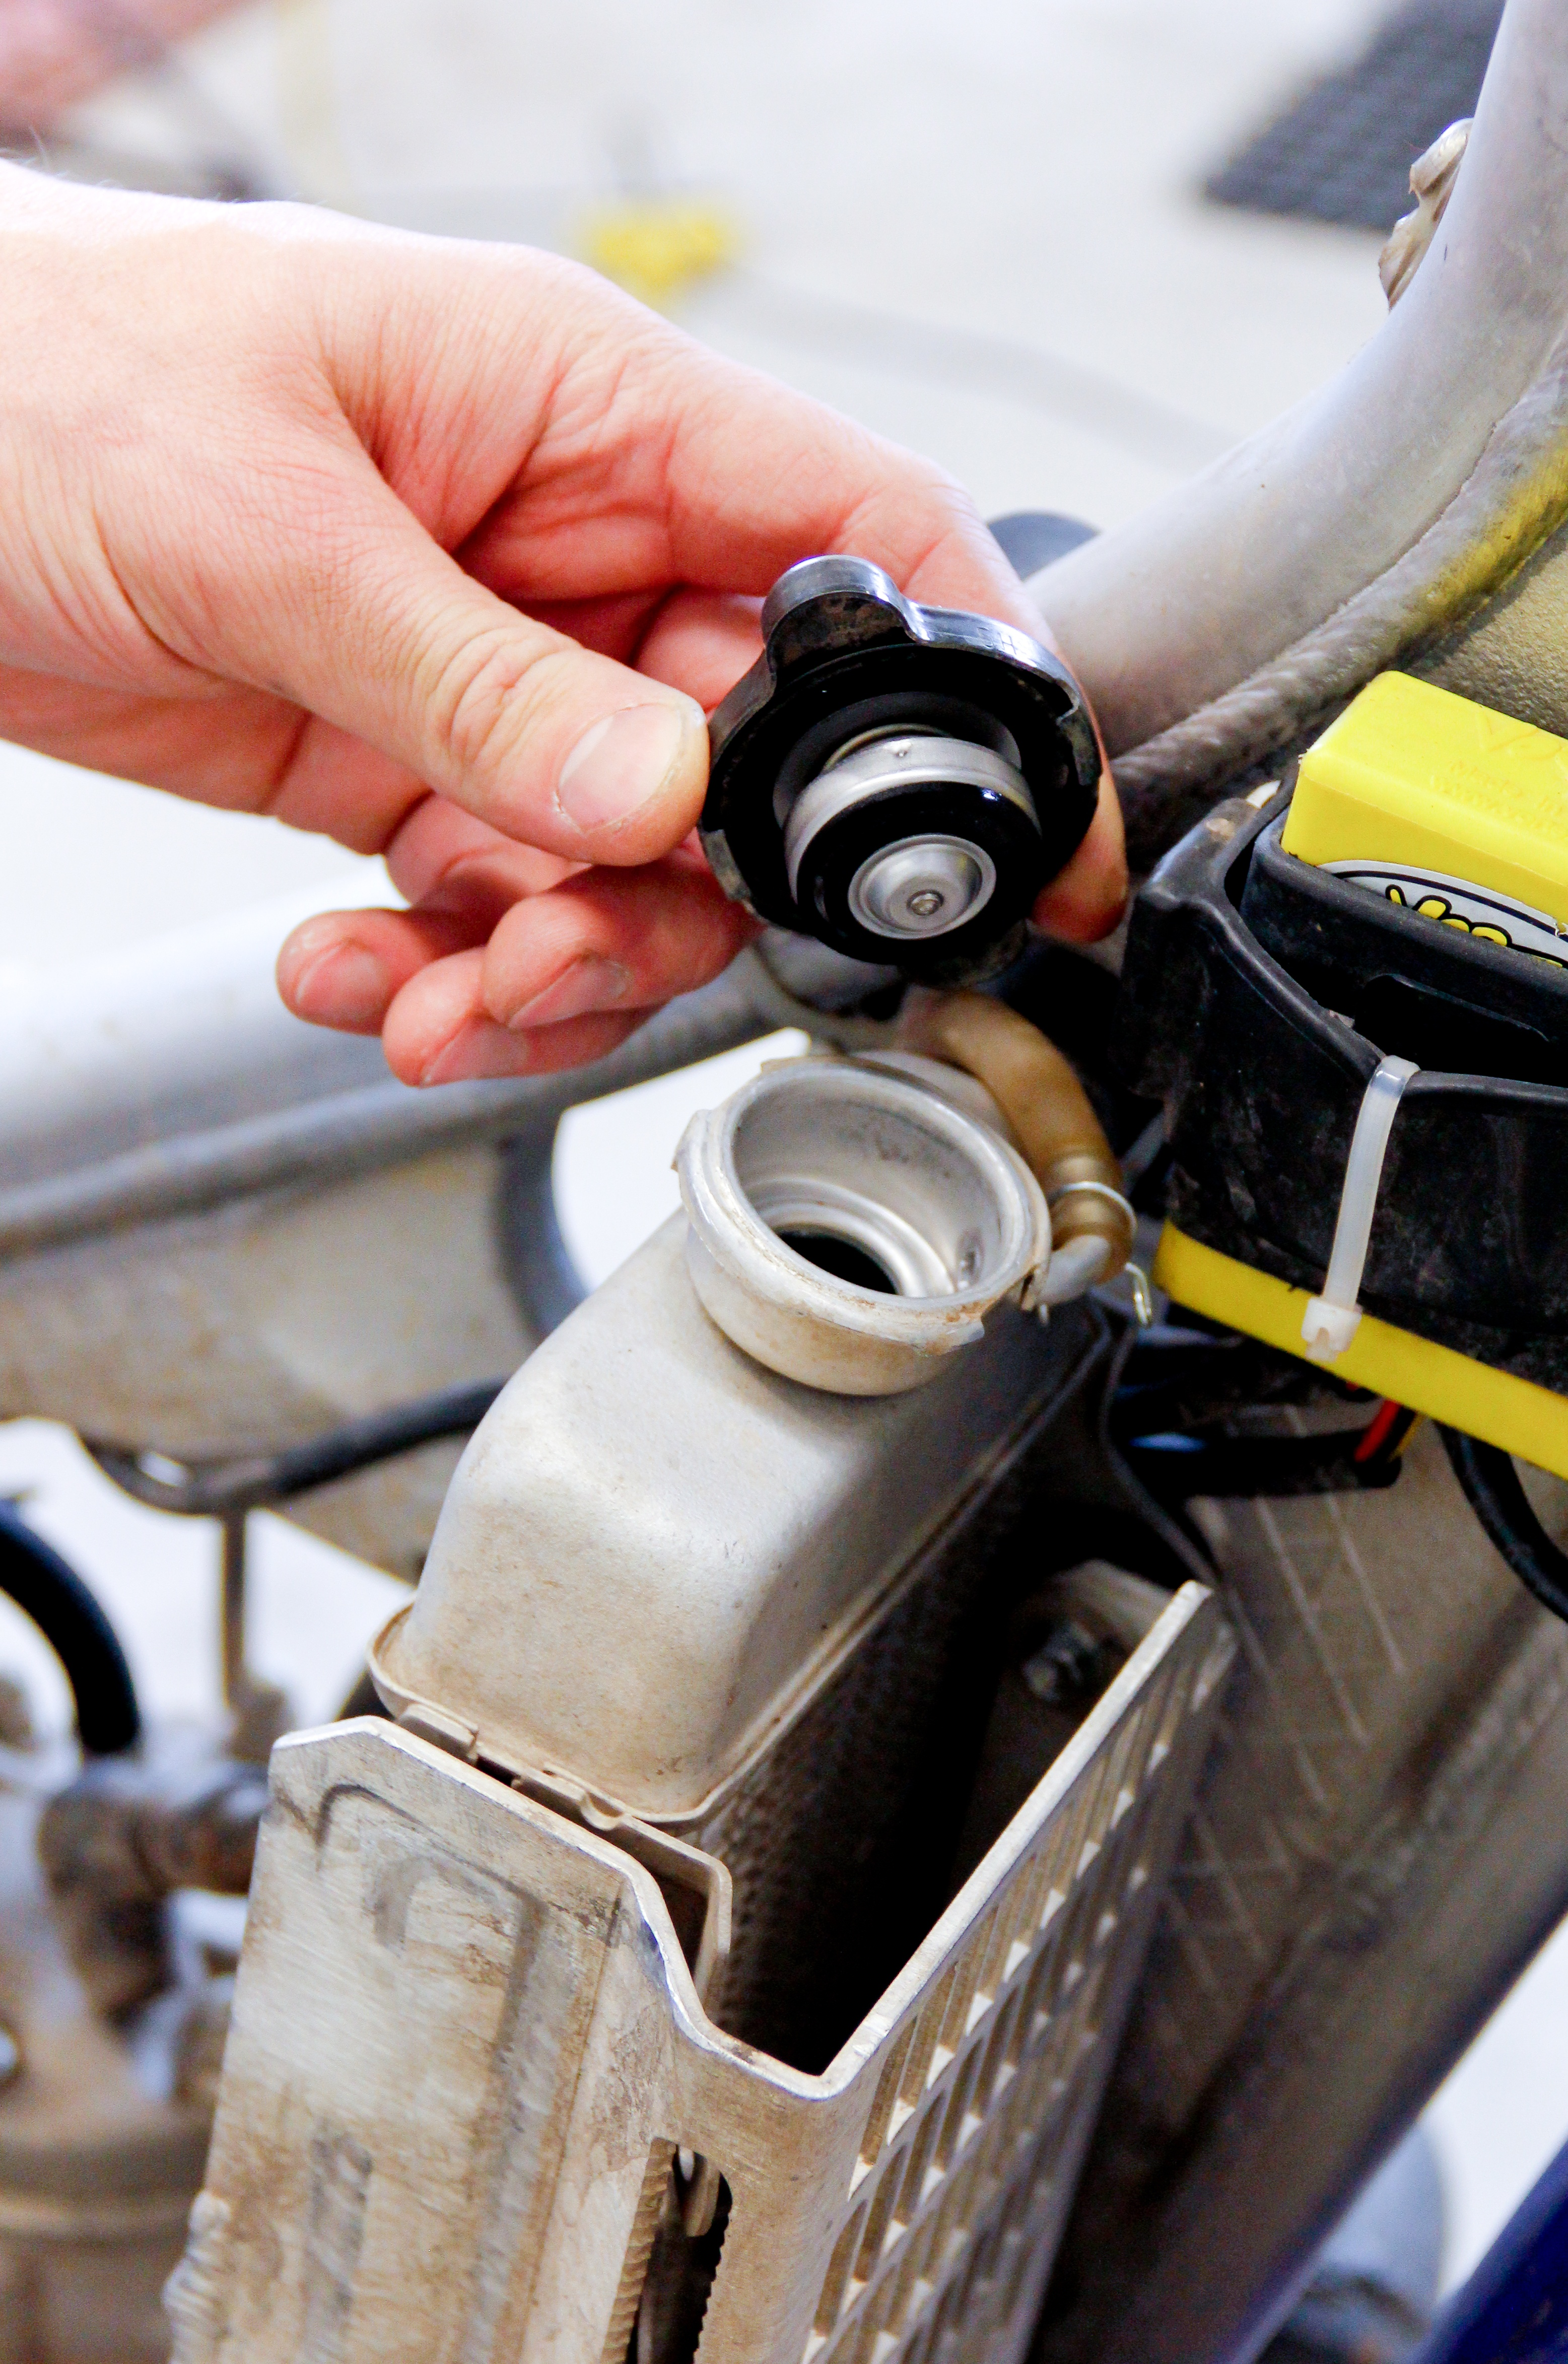 10 Signs Your 4-Stroke Engine is Getting Tired